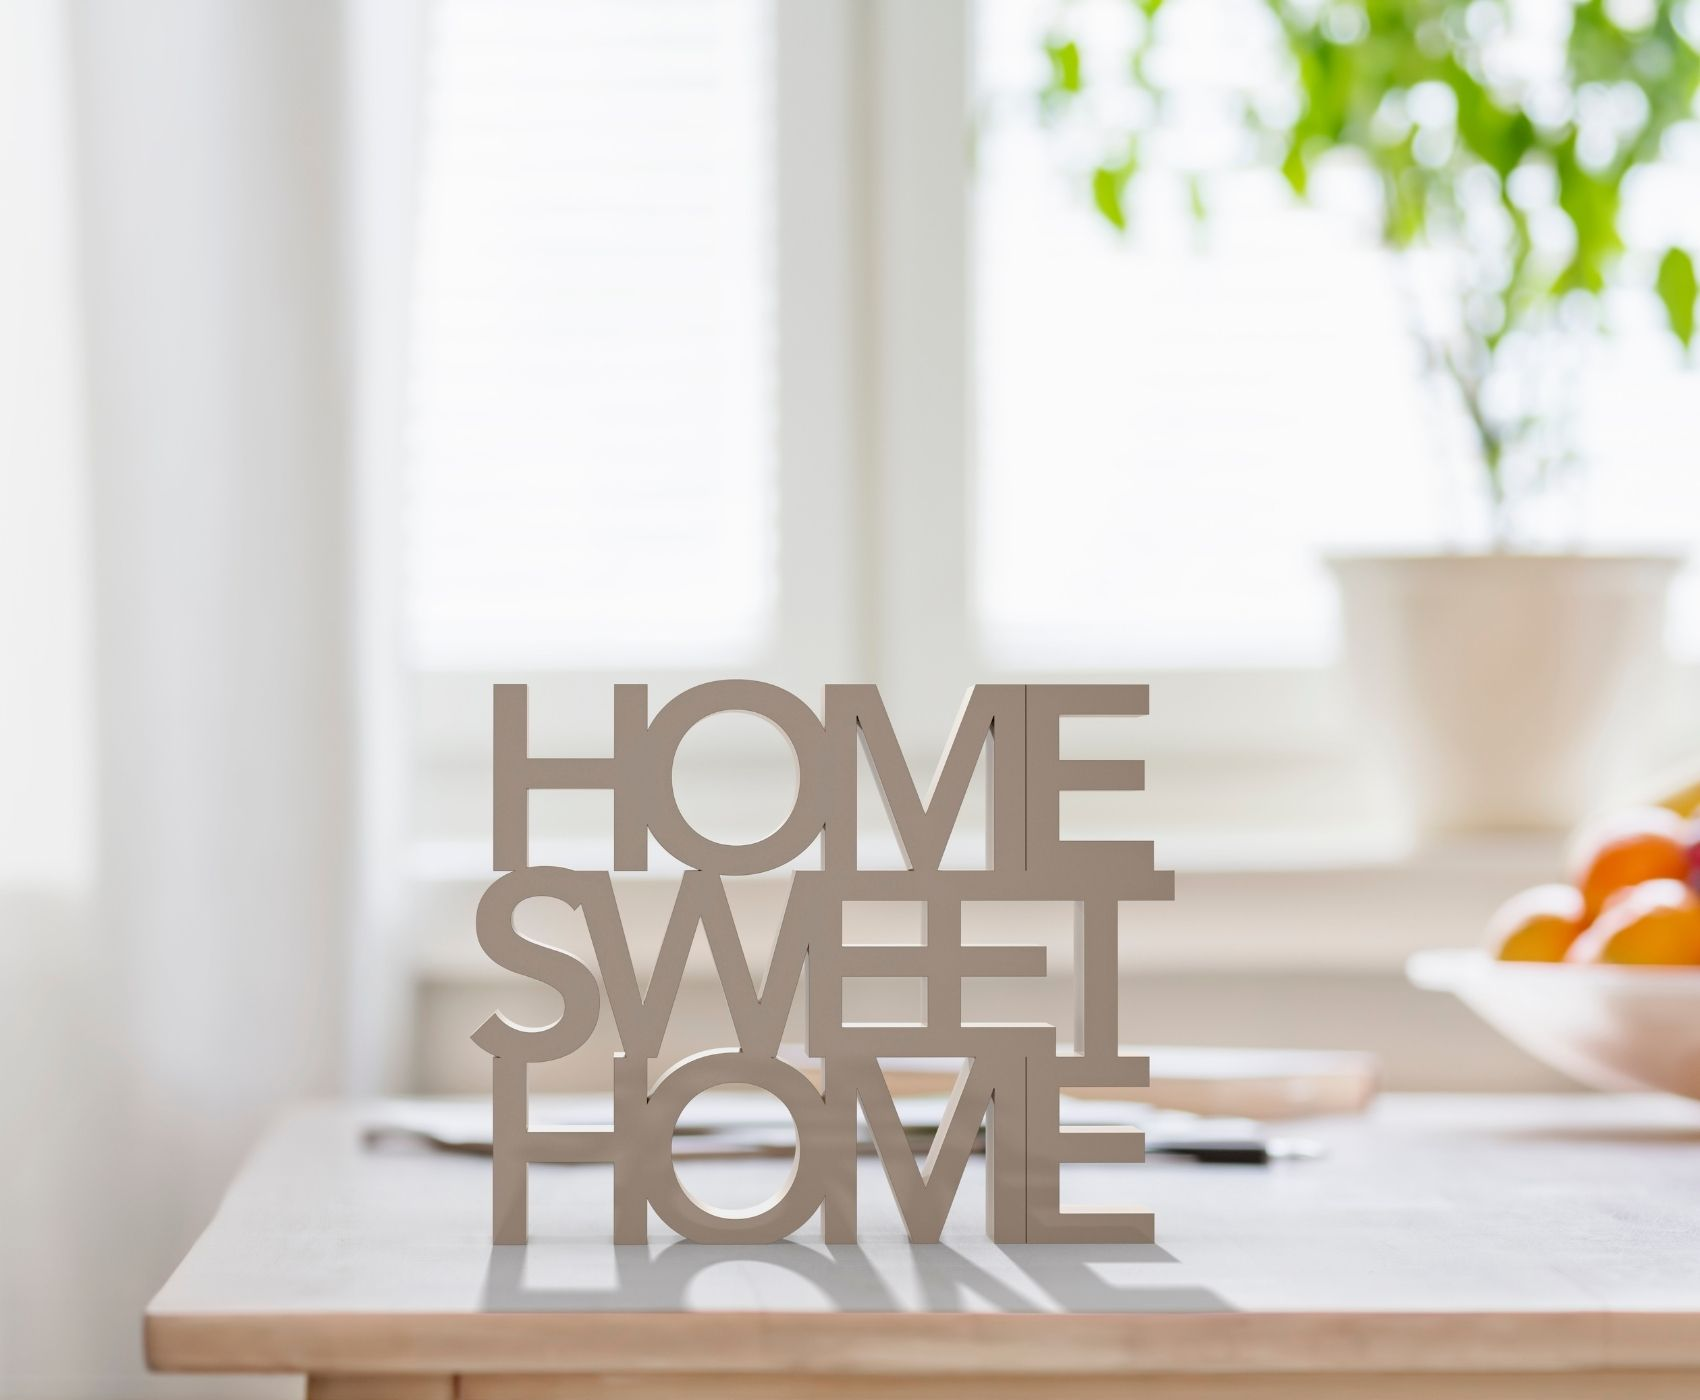 Looking for some help getting more things done around your house? These Simple Time-Saving Tips for Busy Moms include helpful hacks and clever shortcuts to help you get more done around the house.